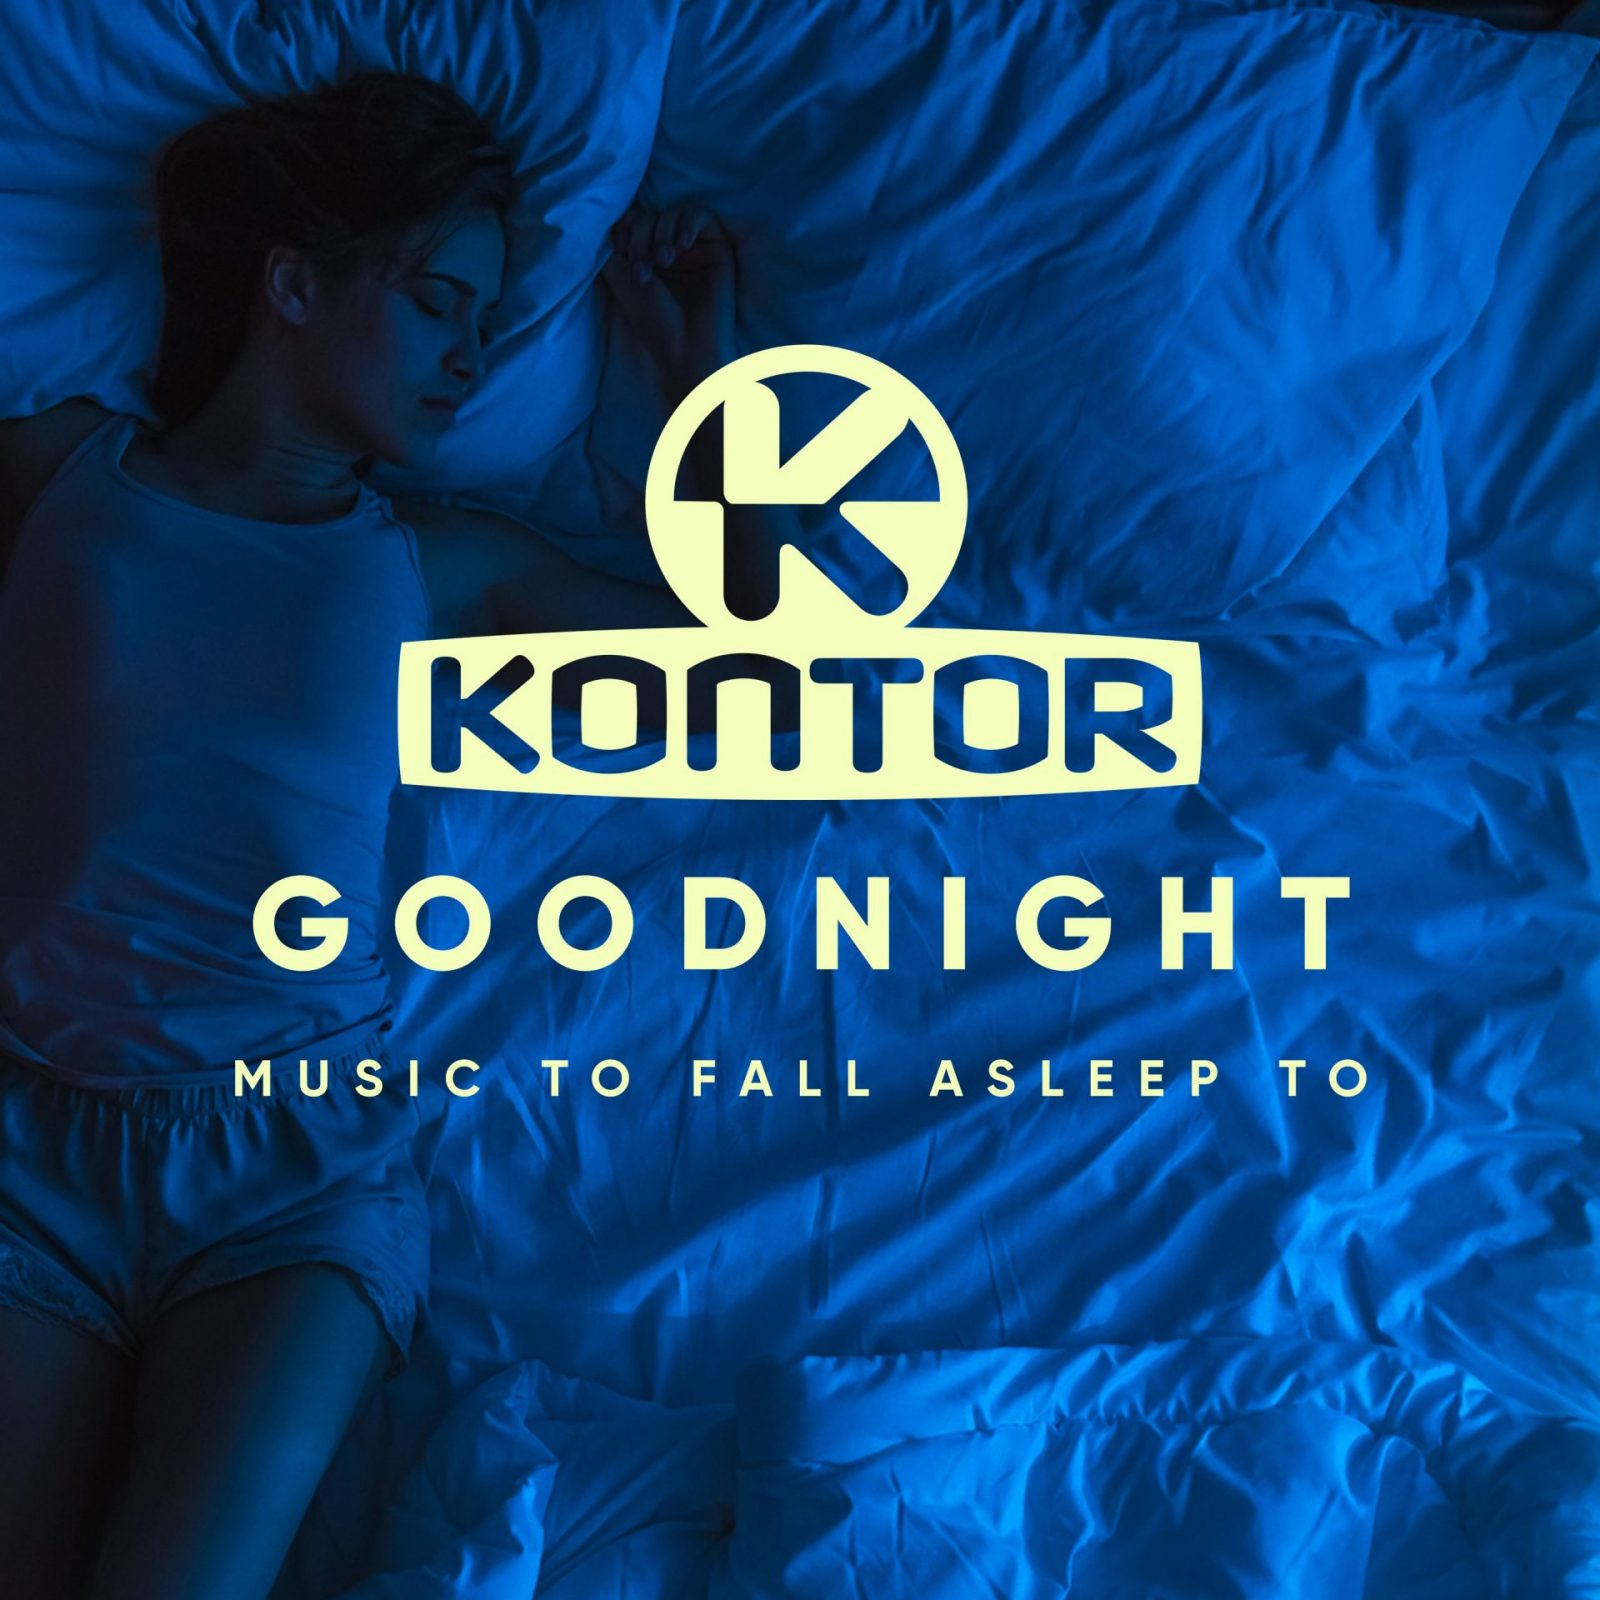 Chassio - Kontor Good Night (Music To Fall Asleep To)